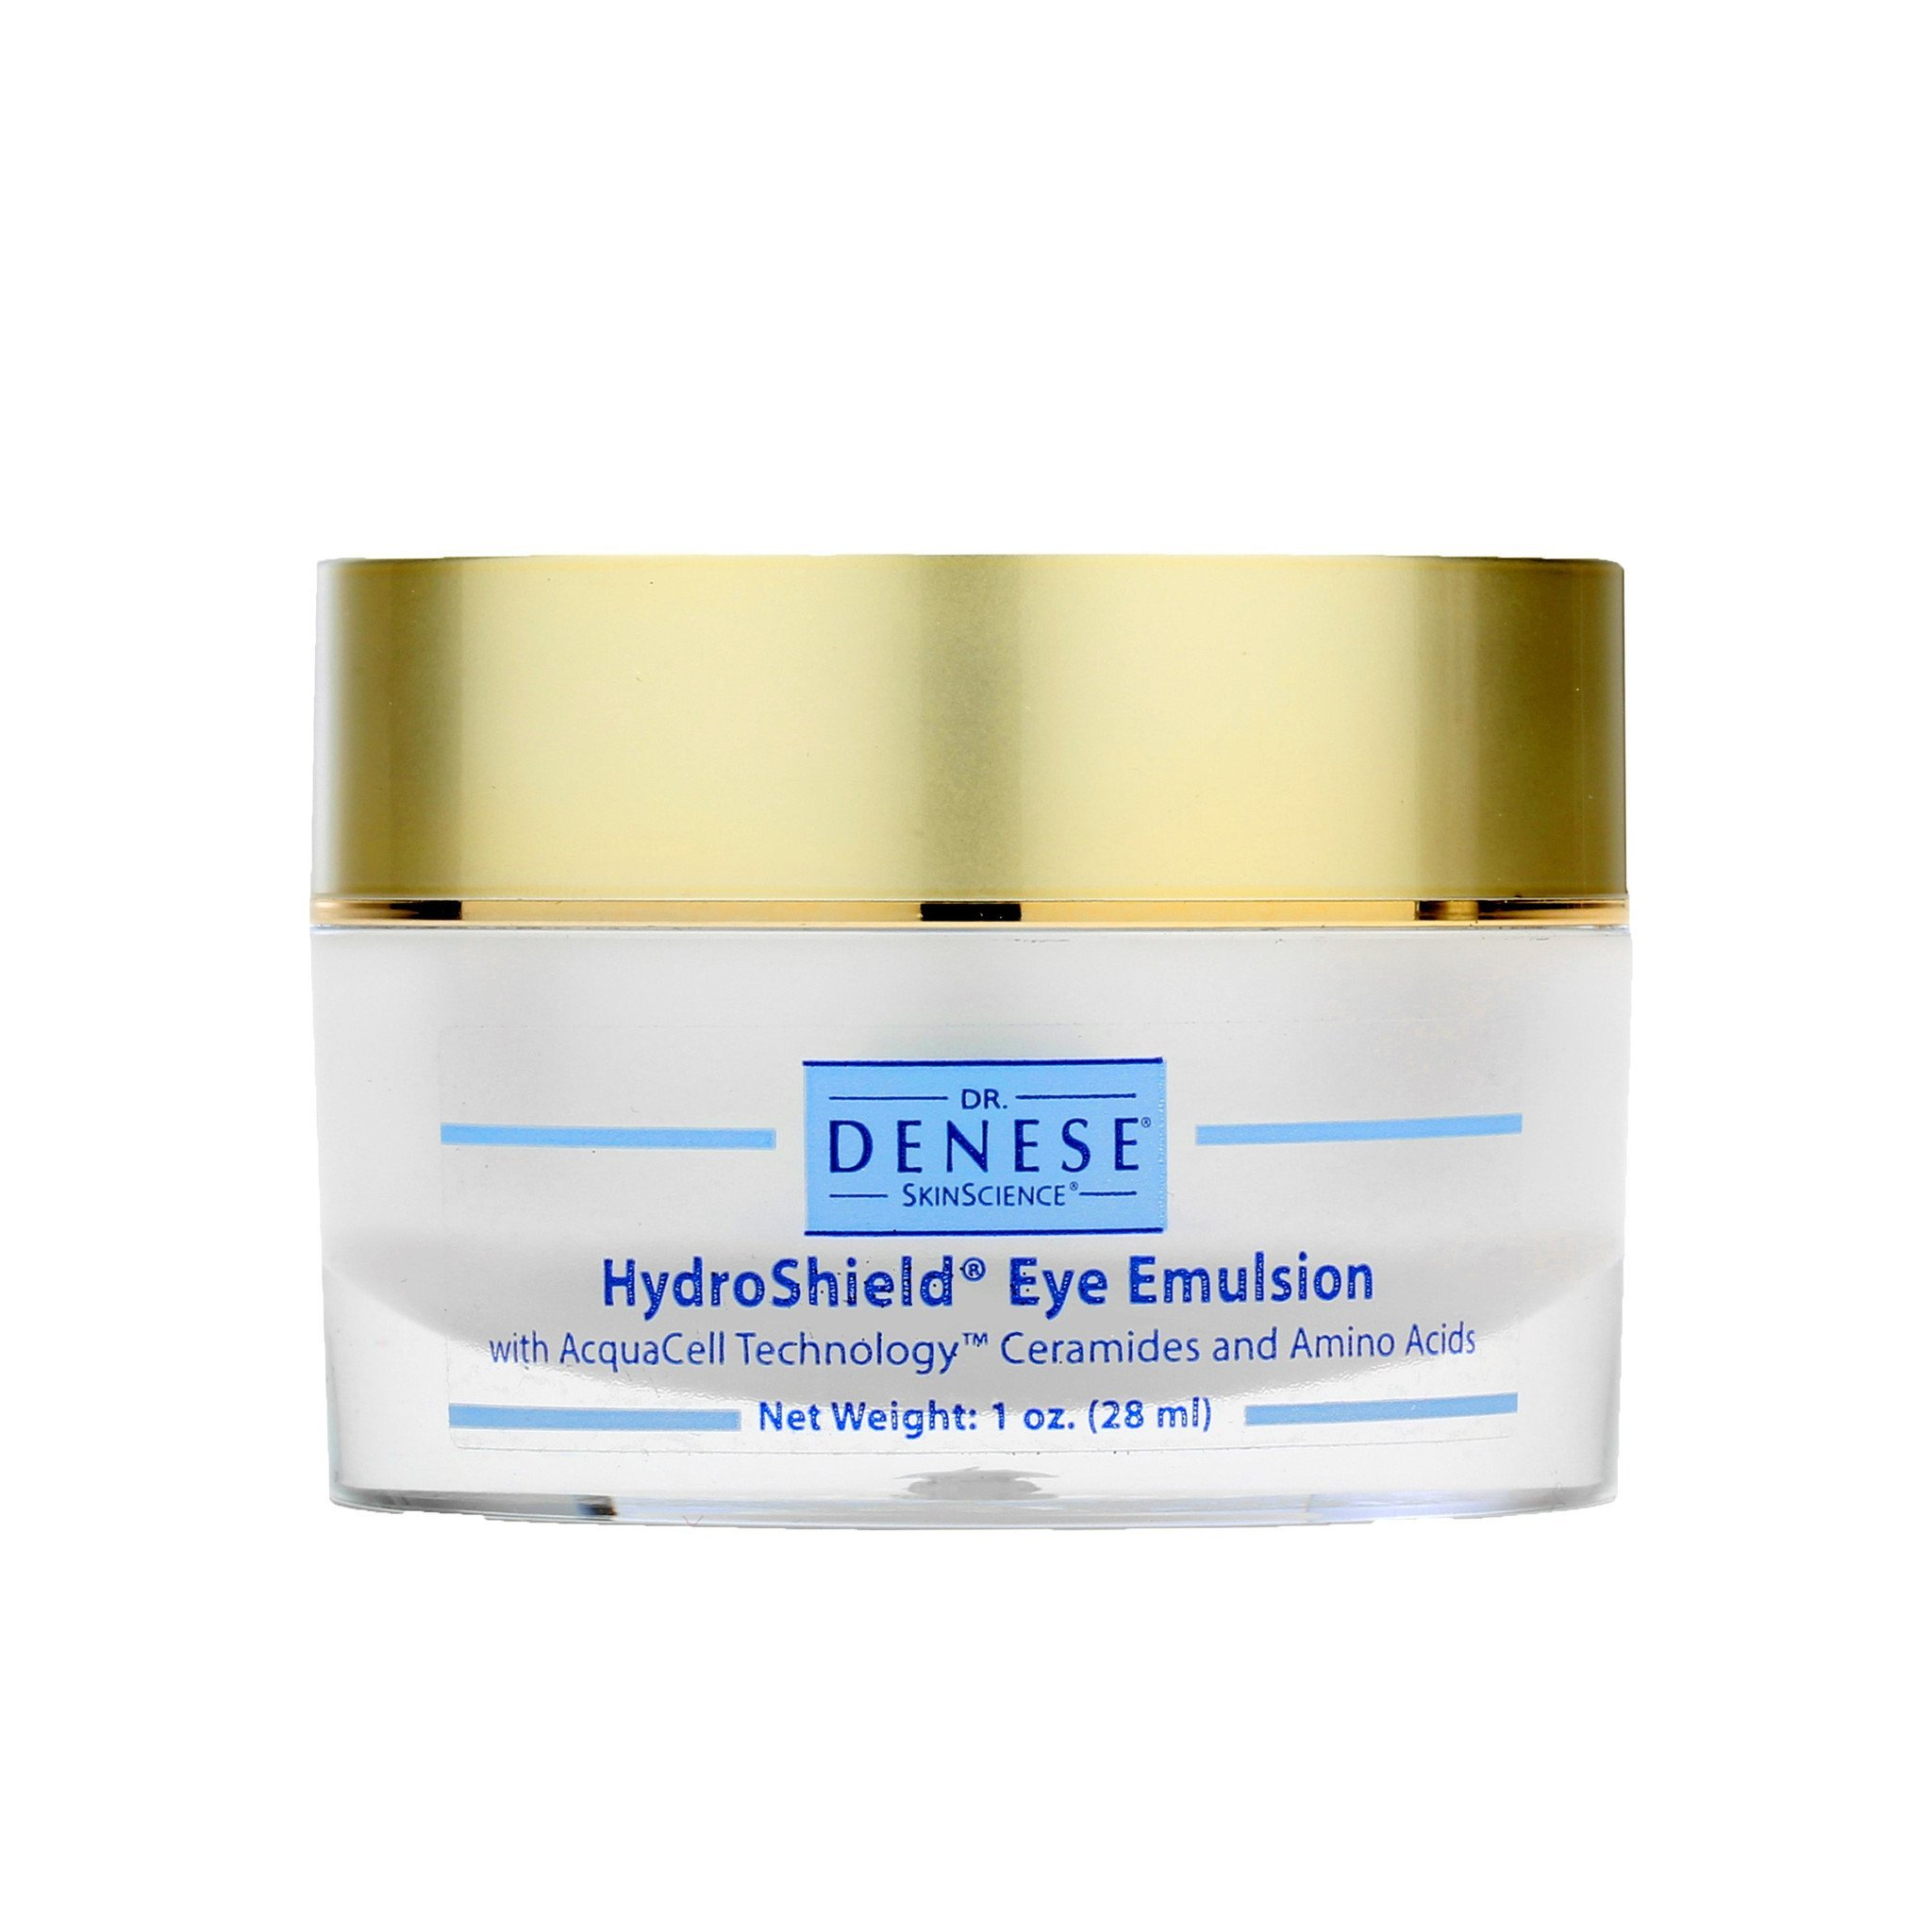 Dr. Denese HydroShield Eye Emulsion with Acquacell Technology (1 OZ) by Dr. Denese